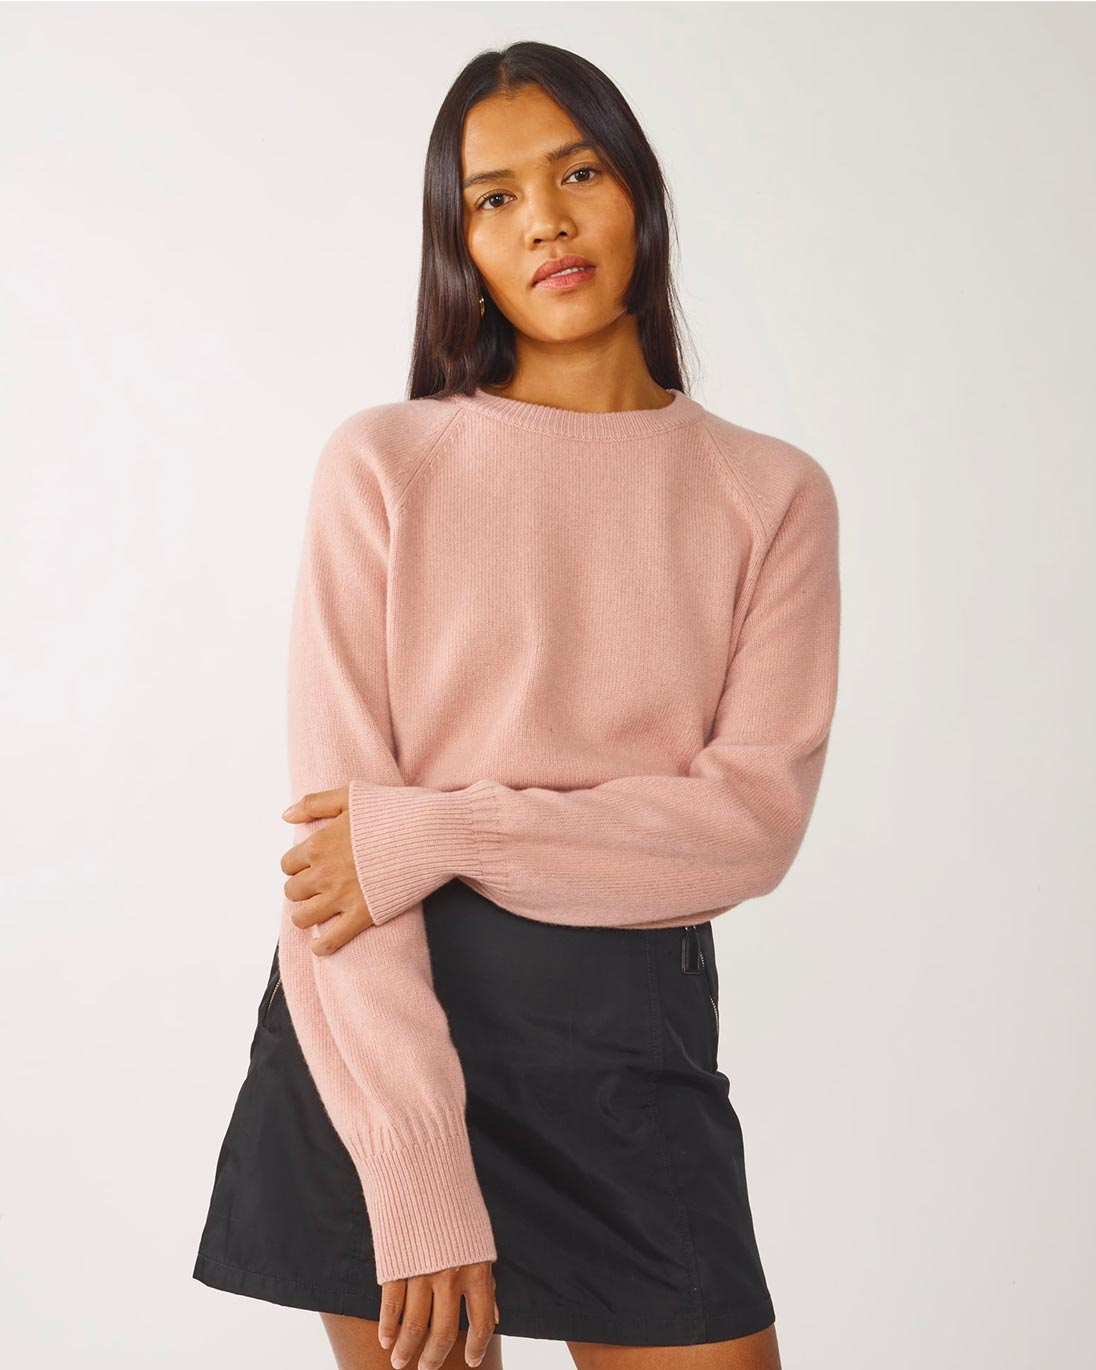 Tricot — Women's recycled cashmere sweater